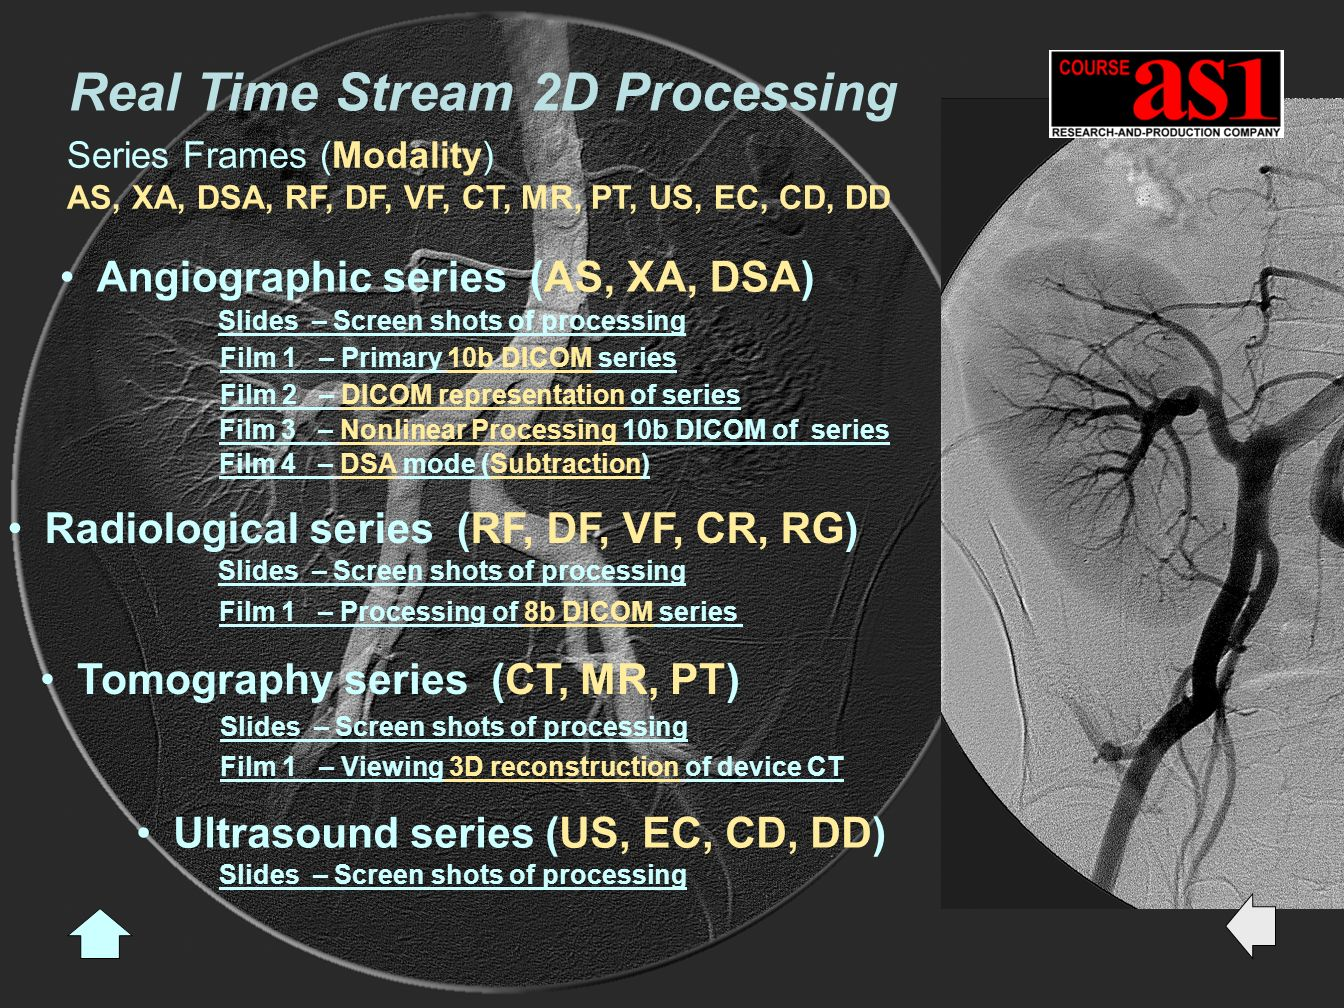 Angiographic series (AS, XA, DSA) Radiological series (RF, DF, VF, CR, RG) Tomography series (CT, MR, PT) Slides – Screen shots of processing Film 1 – Processing in a circular zone Film 2 – Processing in an elliptic zone Slides – Screen shots of processing Film 1 – Processing CT series of a human body Slides – Screen shots of processing Film 2 – Processing CT series of a lower jaw Real Time Zoned 2D Processing Series and Single Frames (Modality) CR, RF, RG, MG, XA, CT, MR, SC